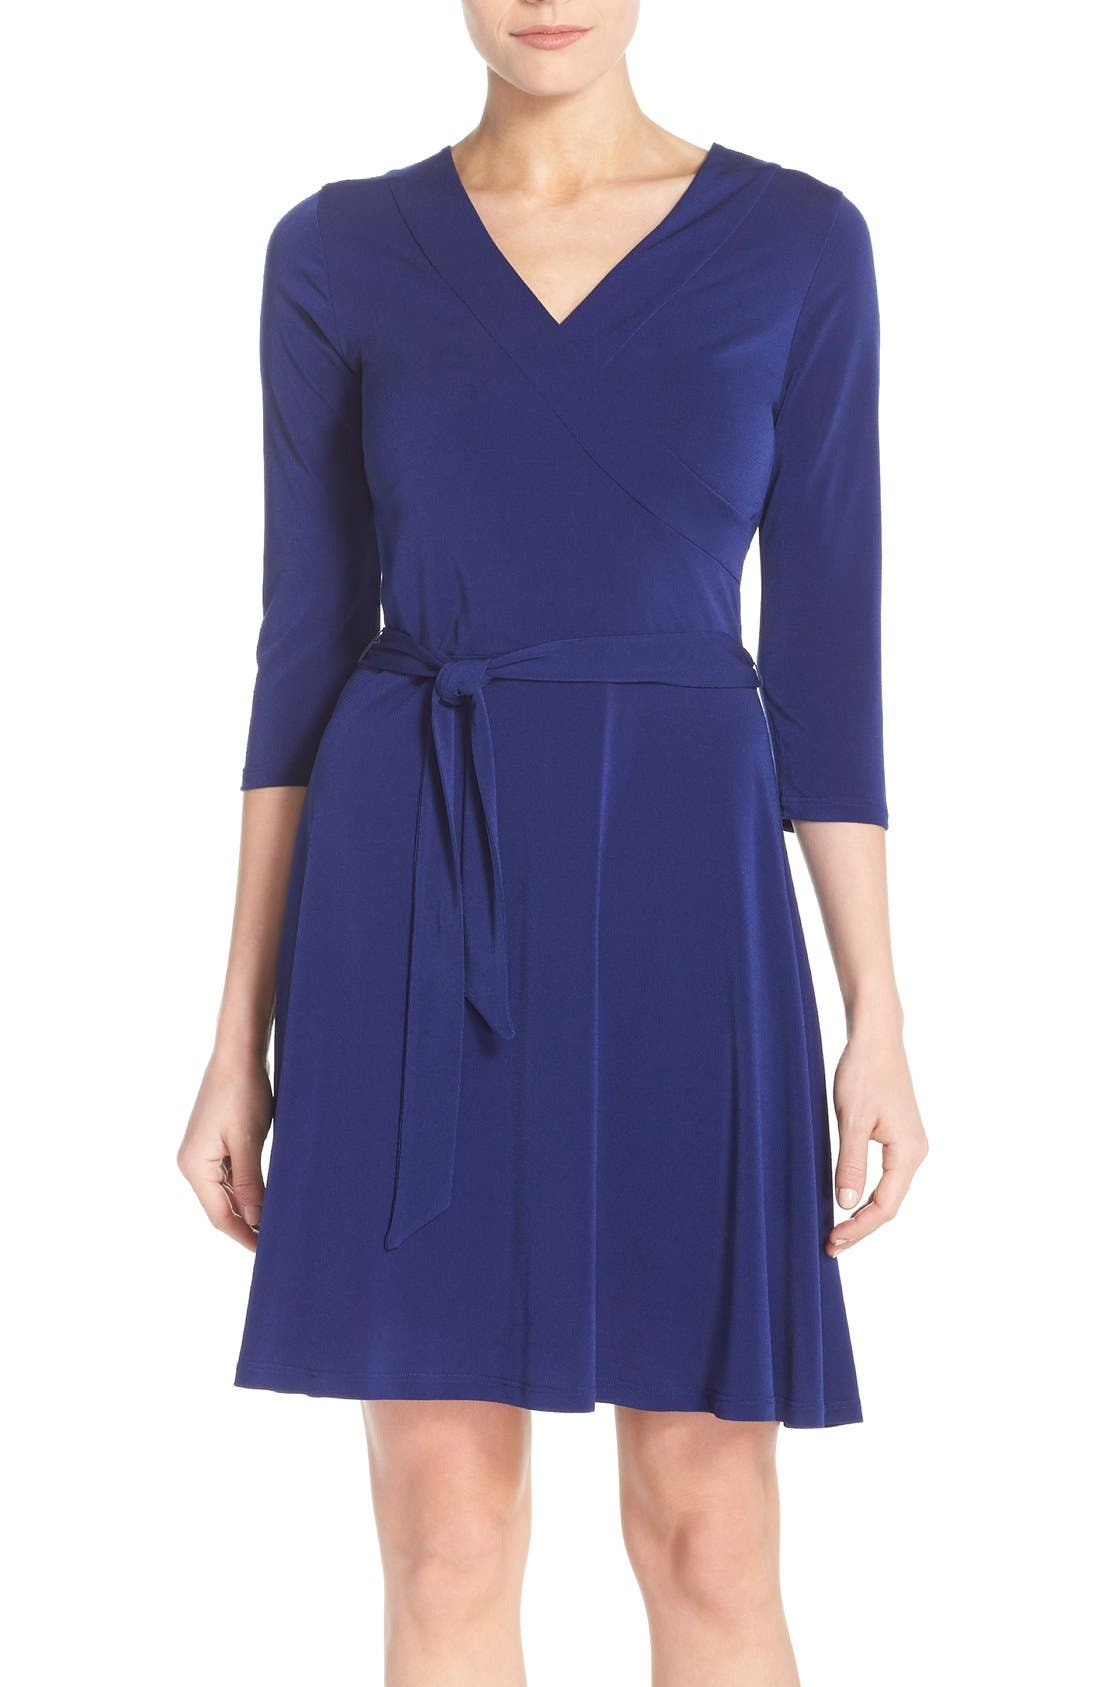 Alternate Image 1 Selected - Leota Jersey Faux Wrap Dress